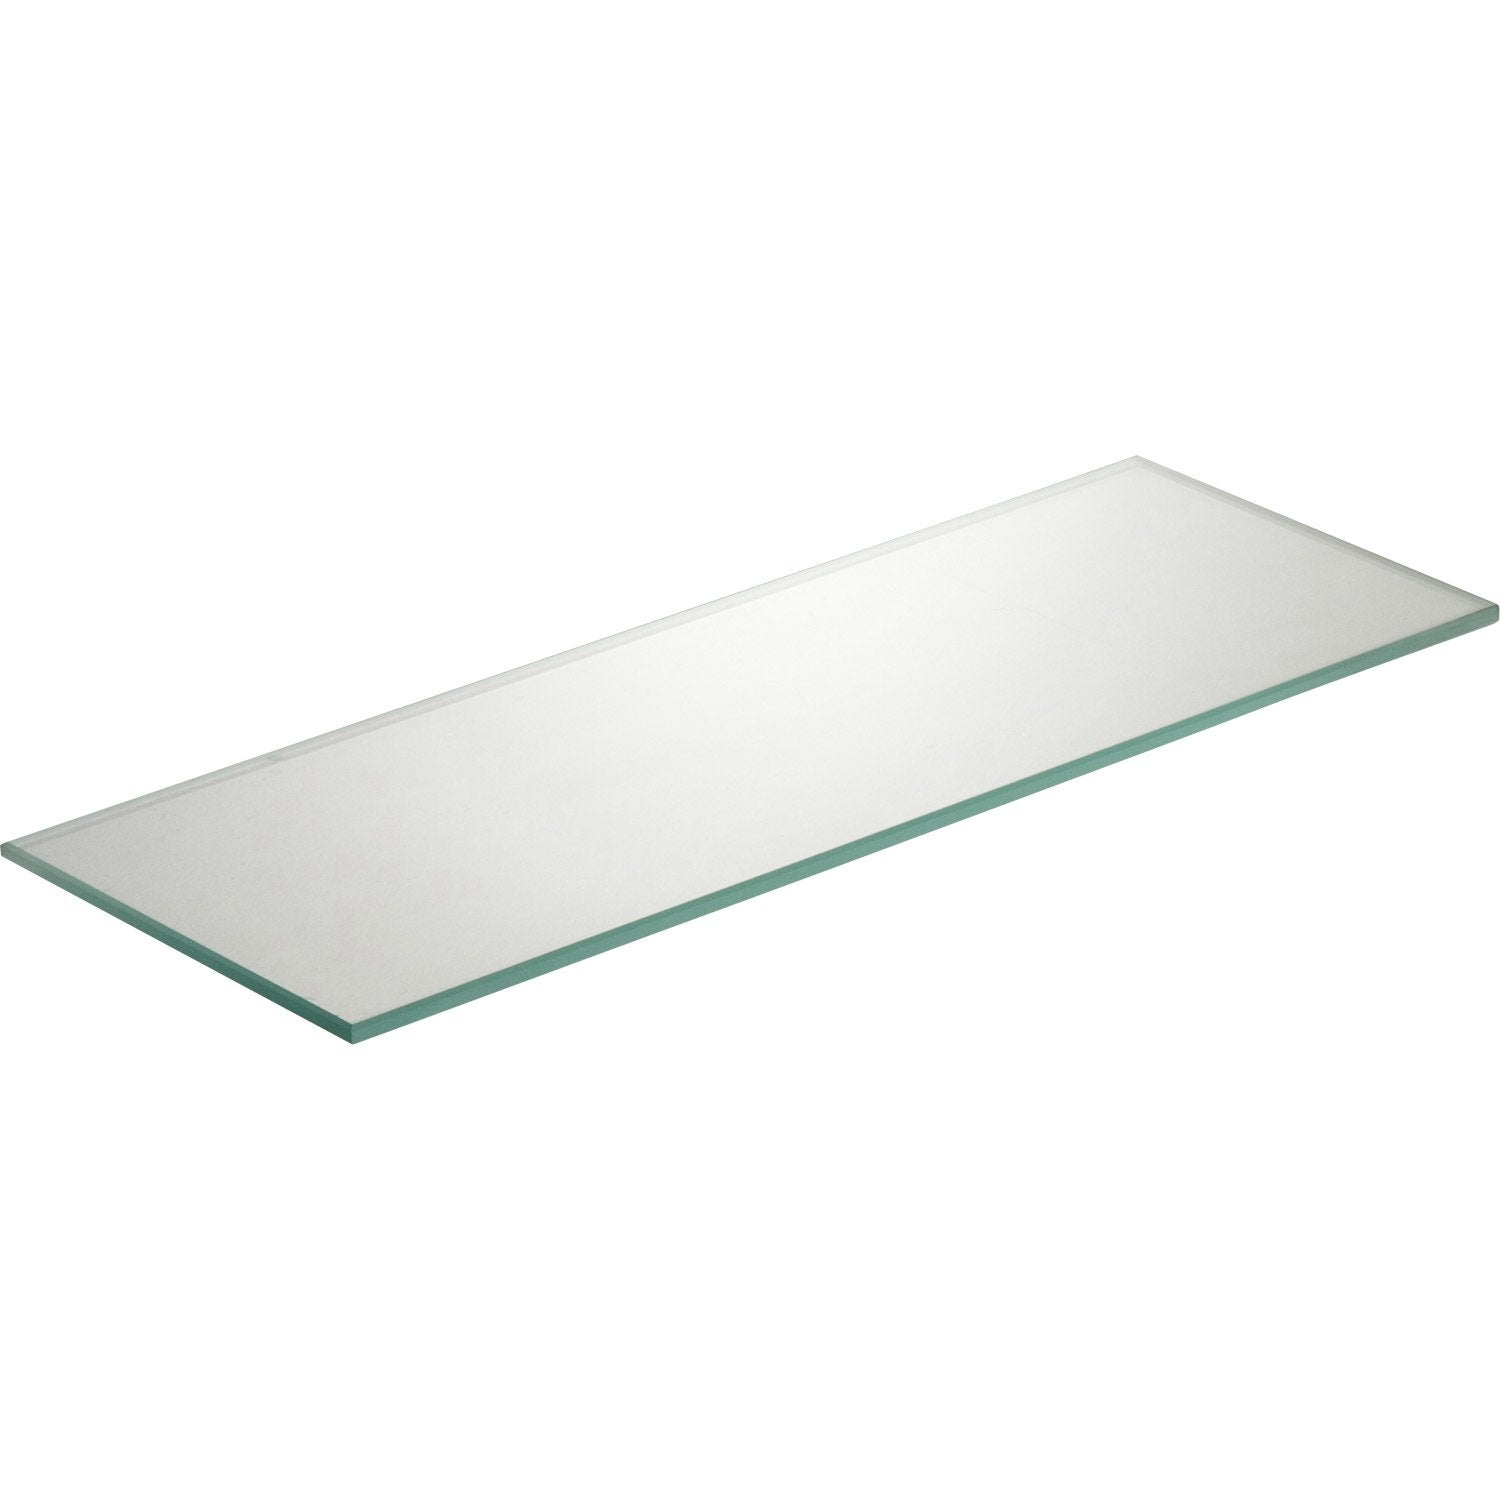 Etag re murale verre transparent x cm ep 6 mm - Miroir leroy merlin sur mesure ...